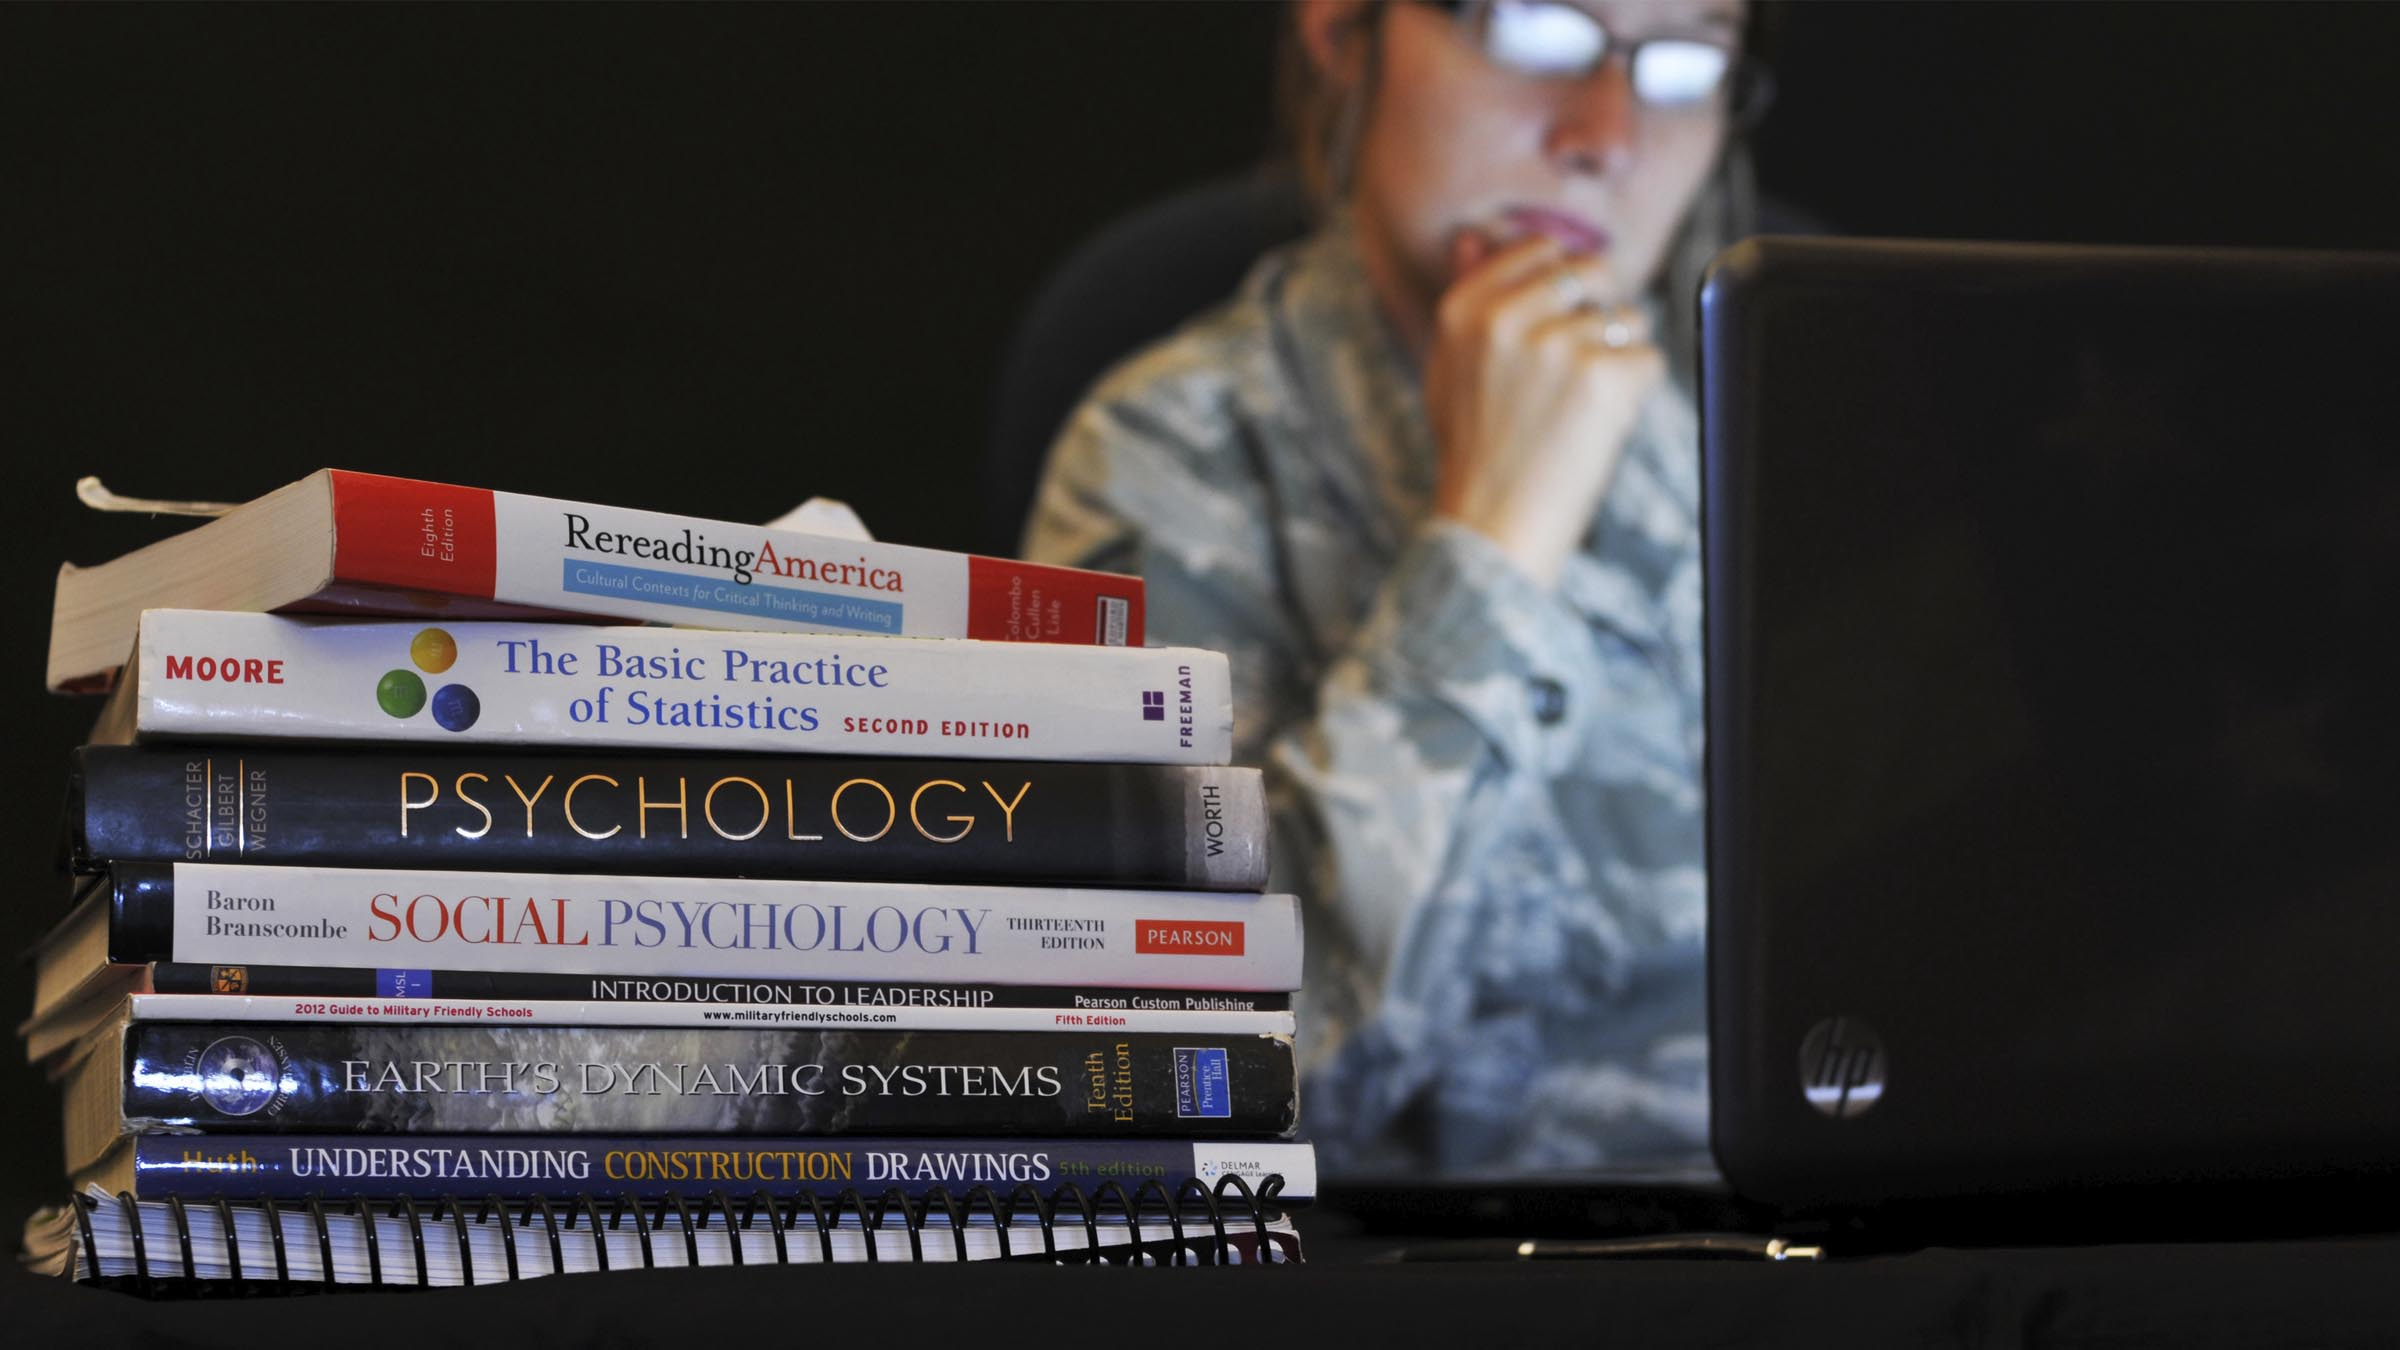 Pile of textbooks and service member in background